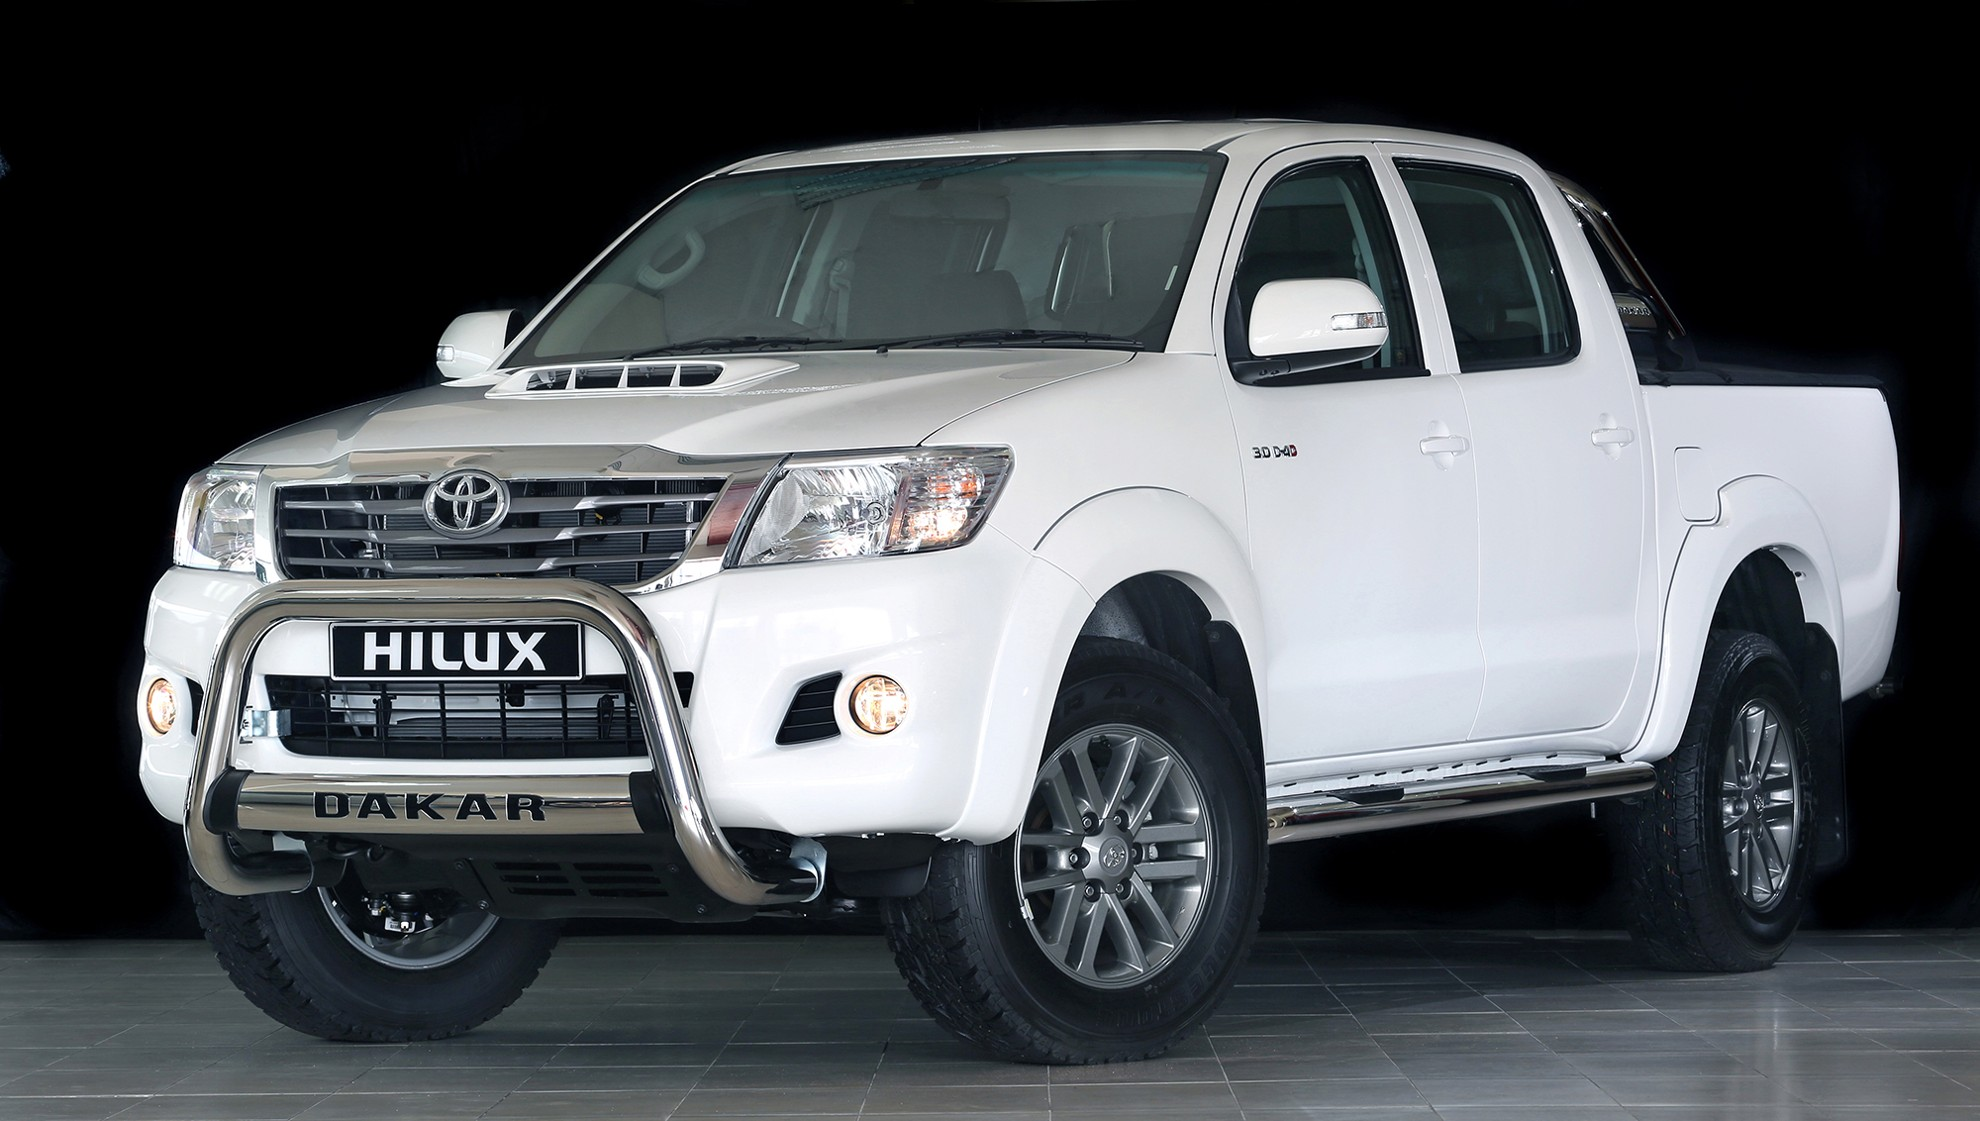 Toyota Hilux Gets The Dakar 2014 Treatment